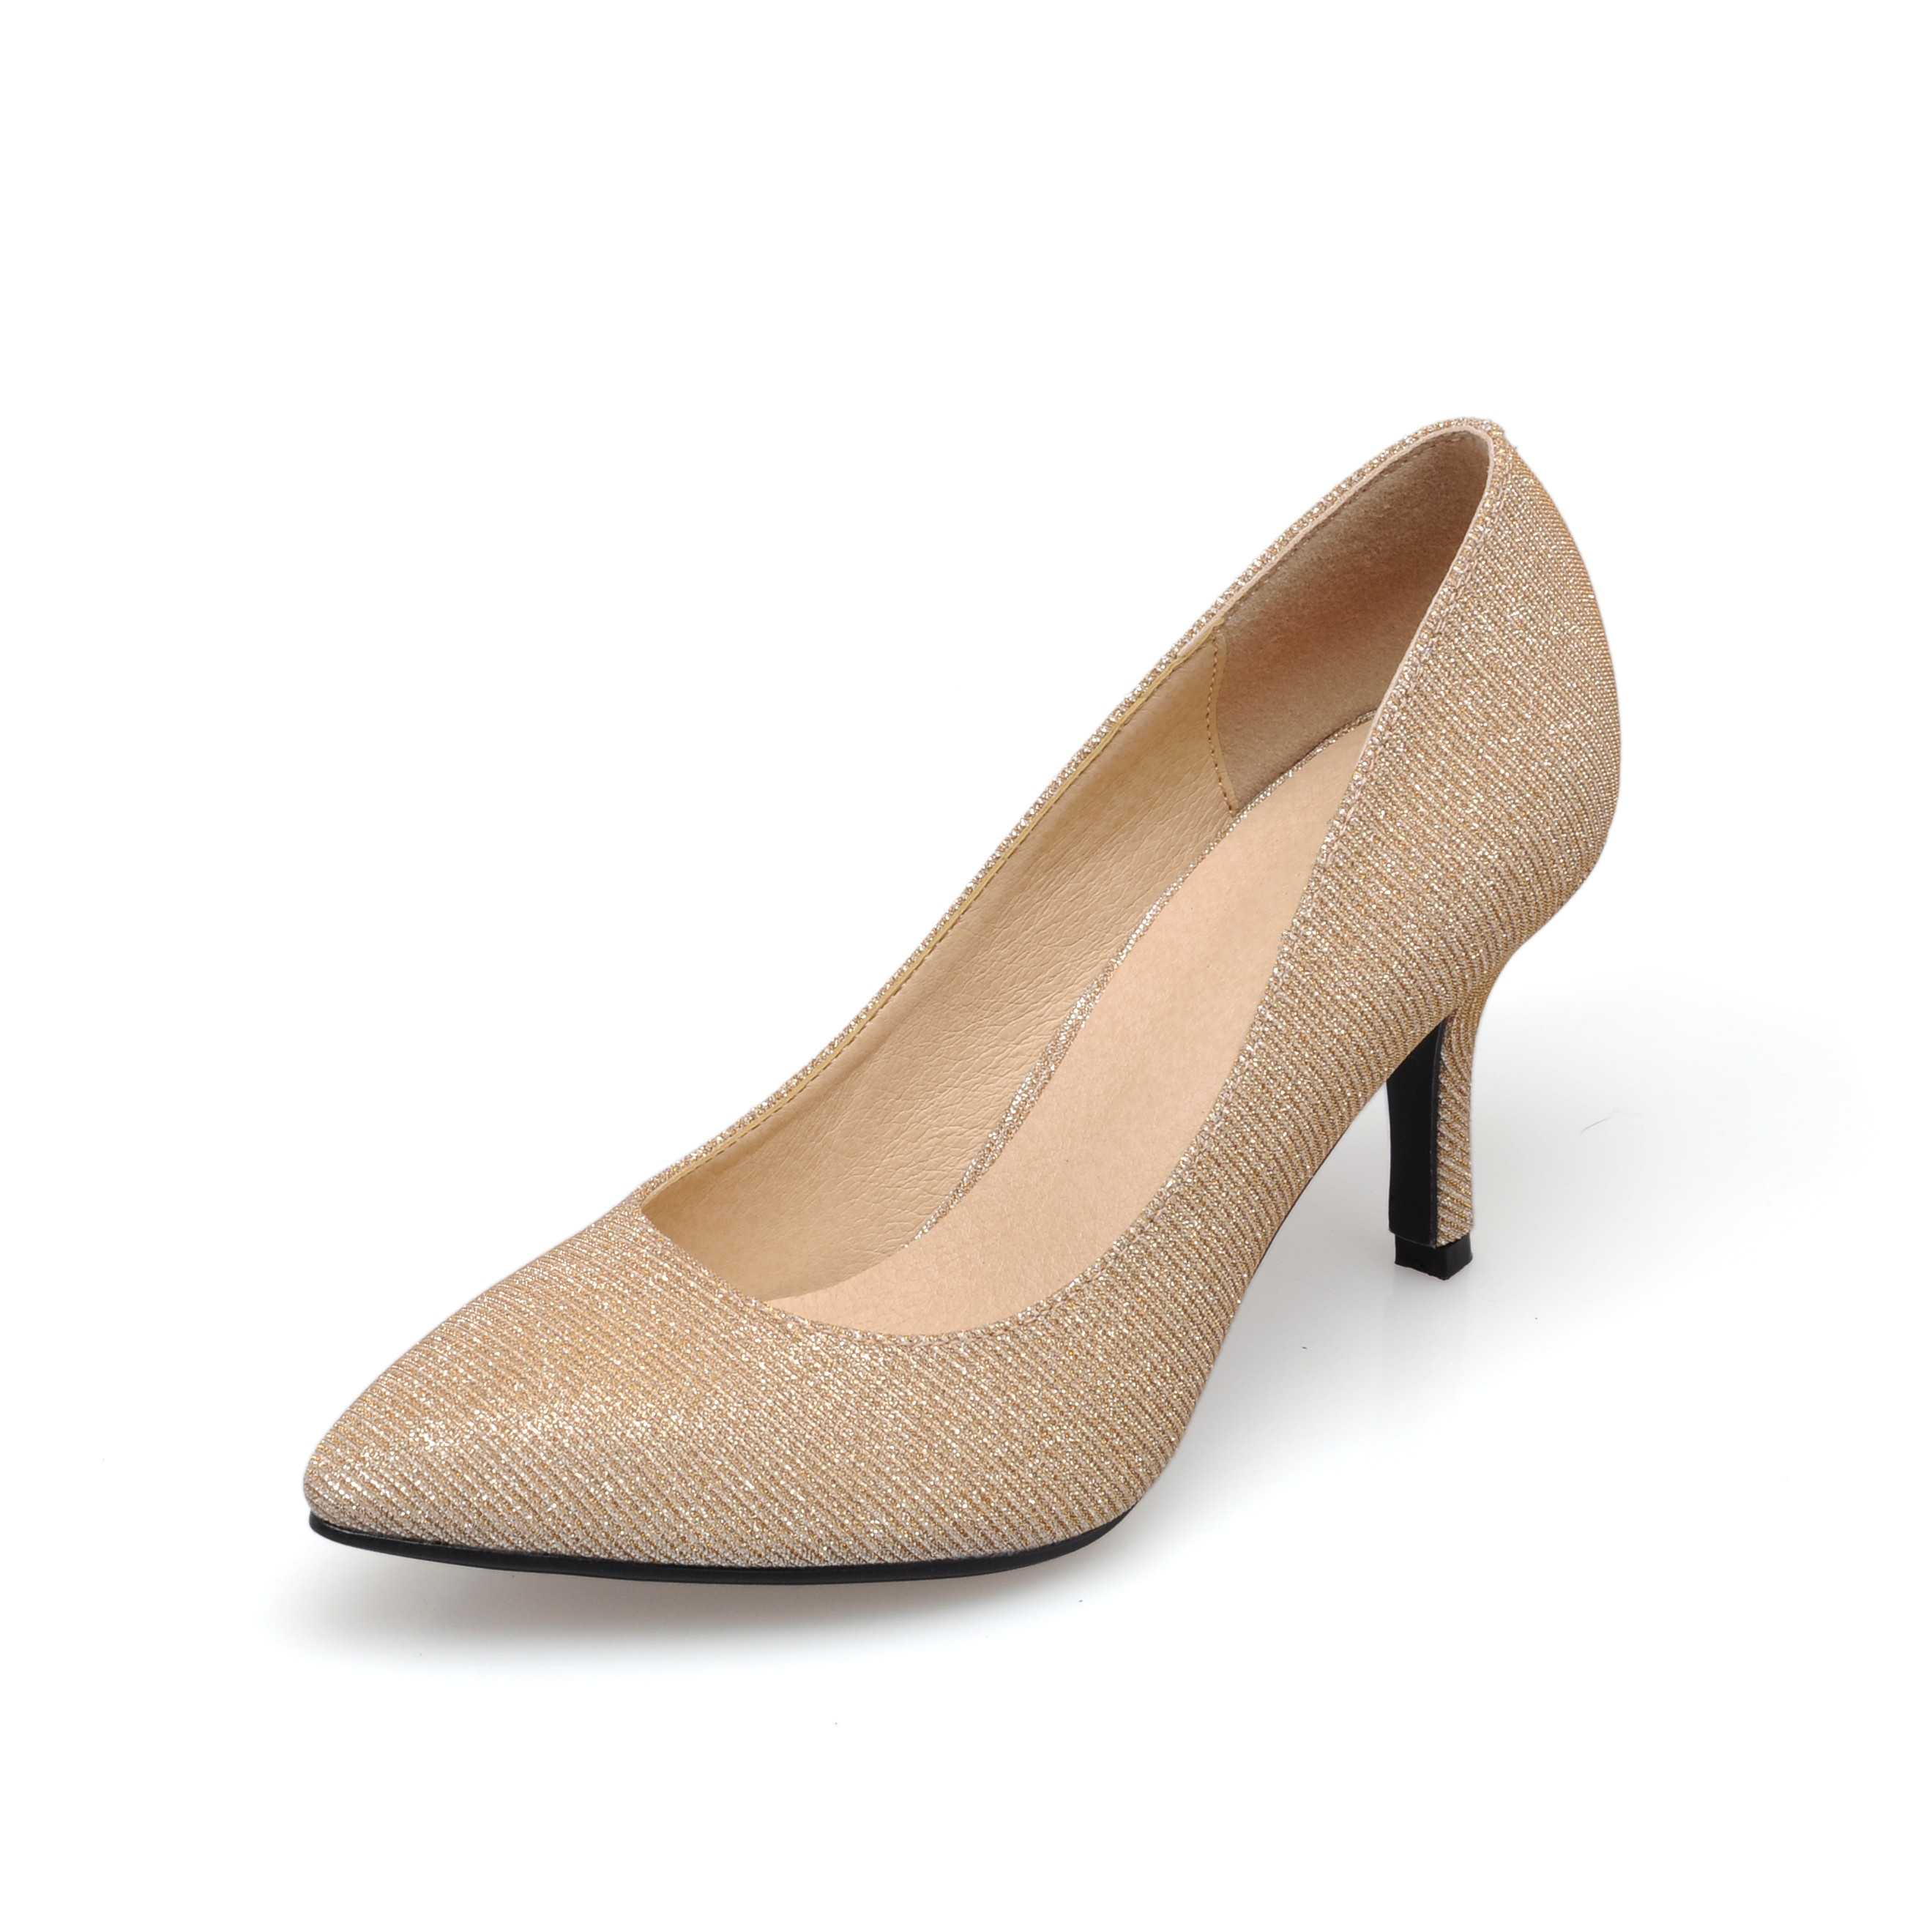 Plus Size 2017 New Spring Classic Women Pumps Fashion High Heel Gold Office Wedding Casual Pointed Toe Shoes Woman SMYBK-067 new hot spring summer high quality fashion trend simple classic solid pleated flats casual pointed toe women office boat shoes